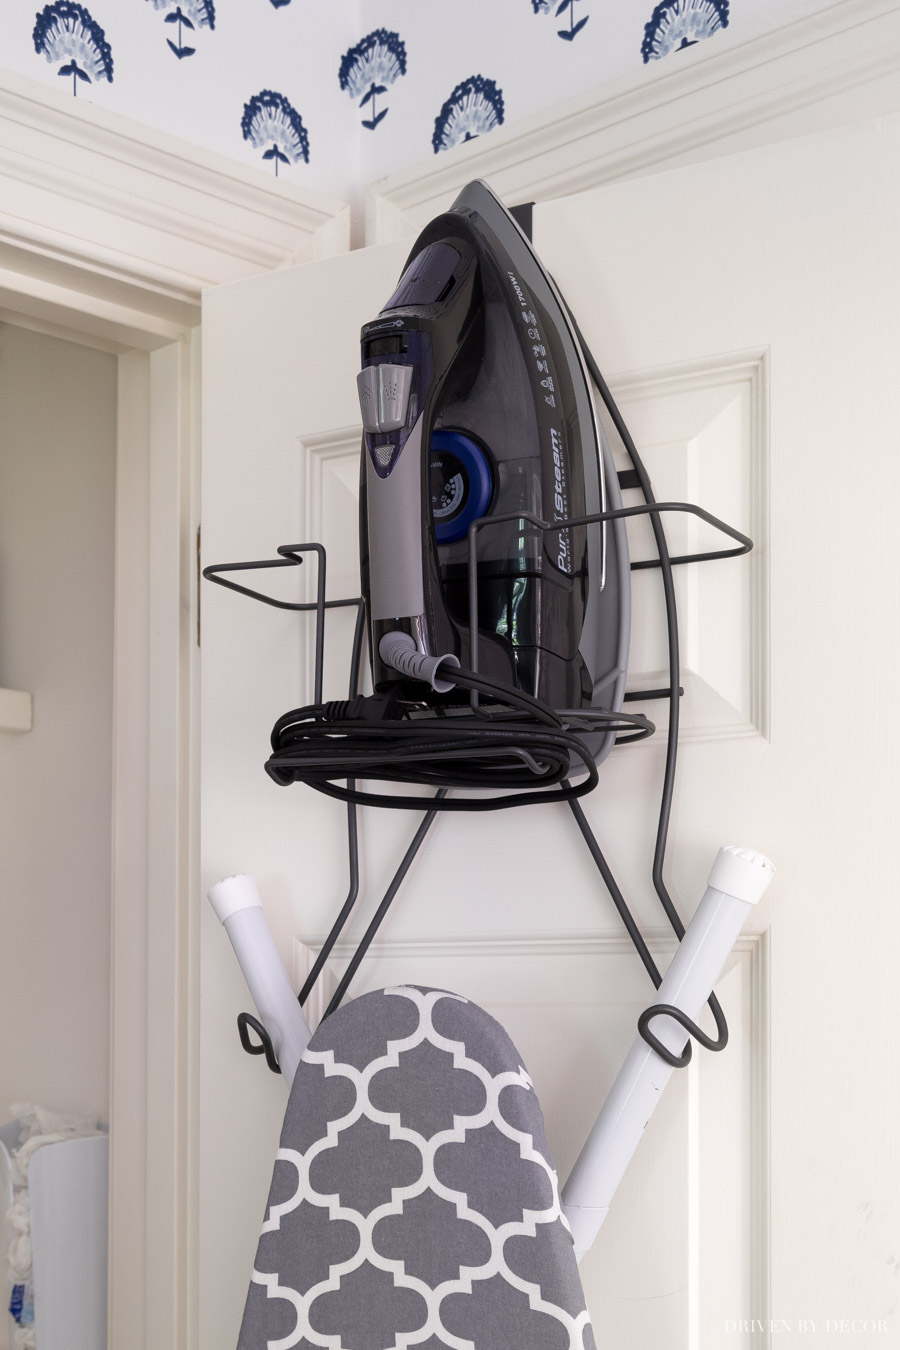 Awesome over the door hanger for your iron and ironing board!